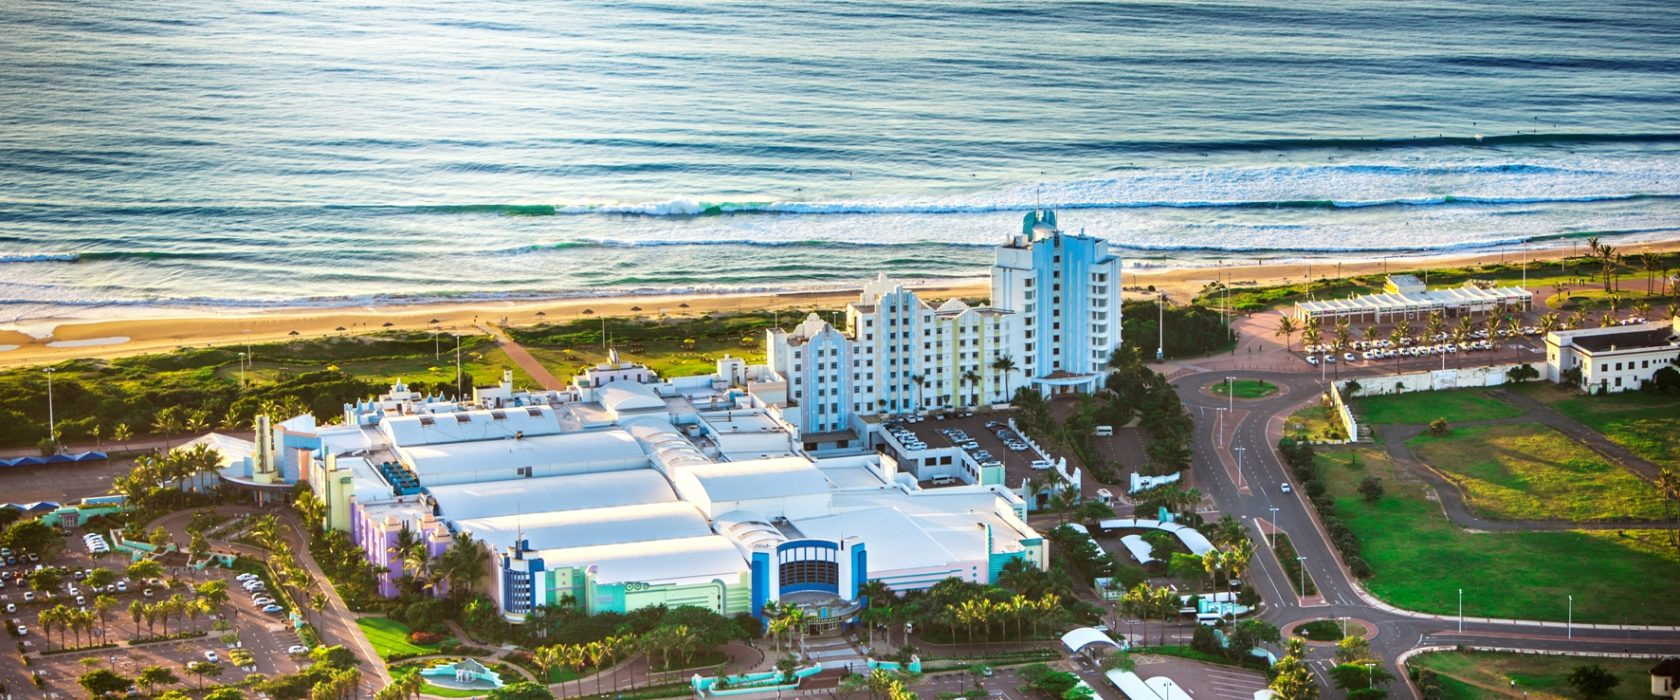 Aerial View Of Suncoast